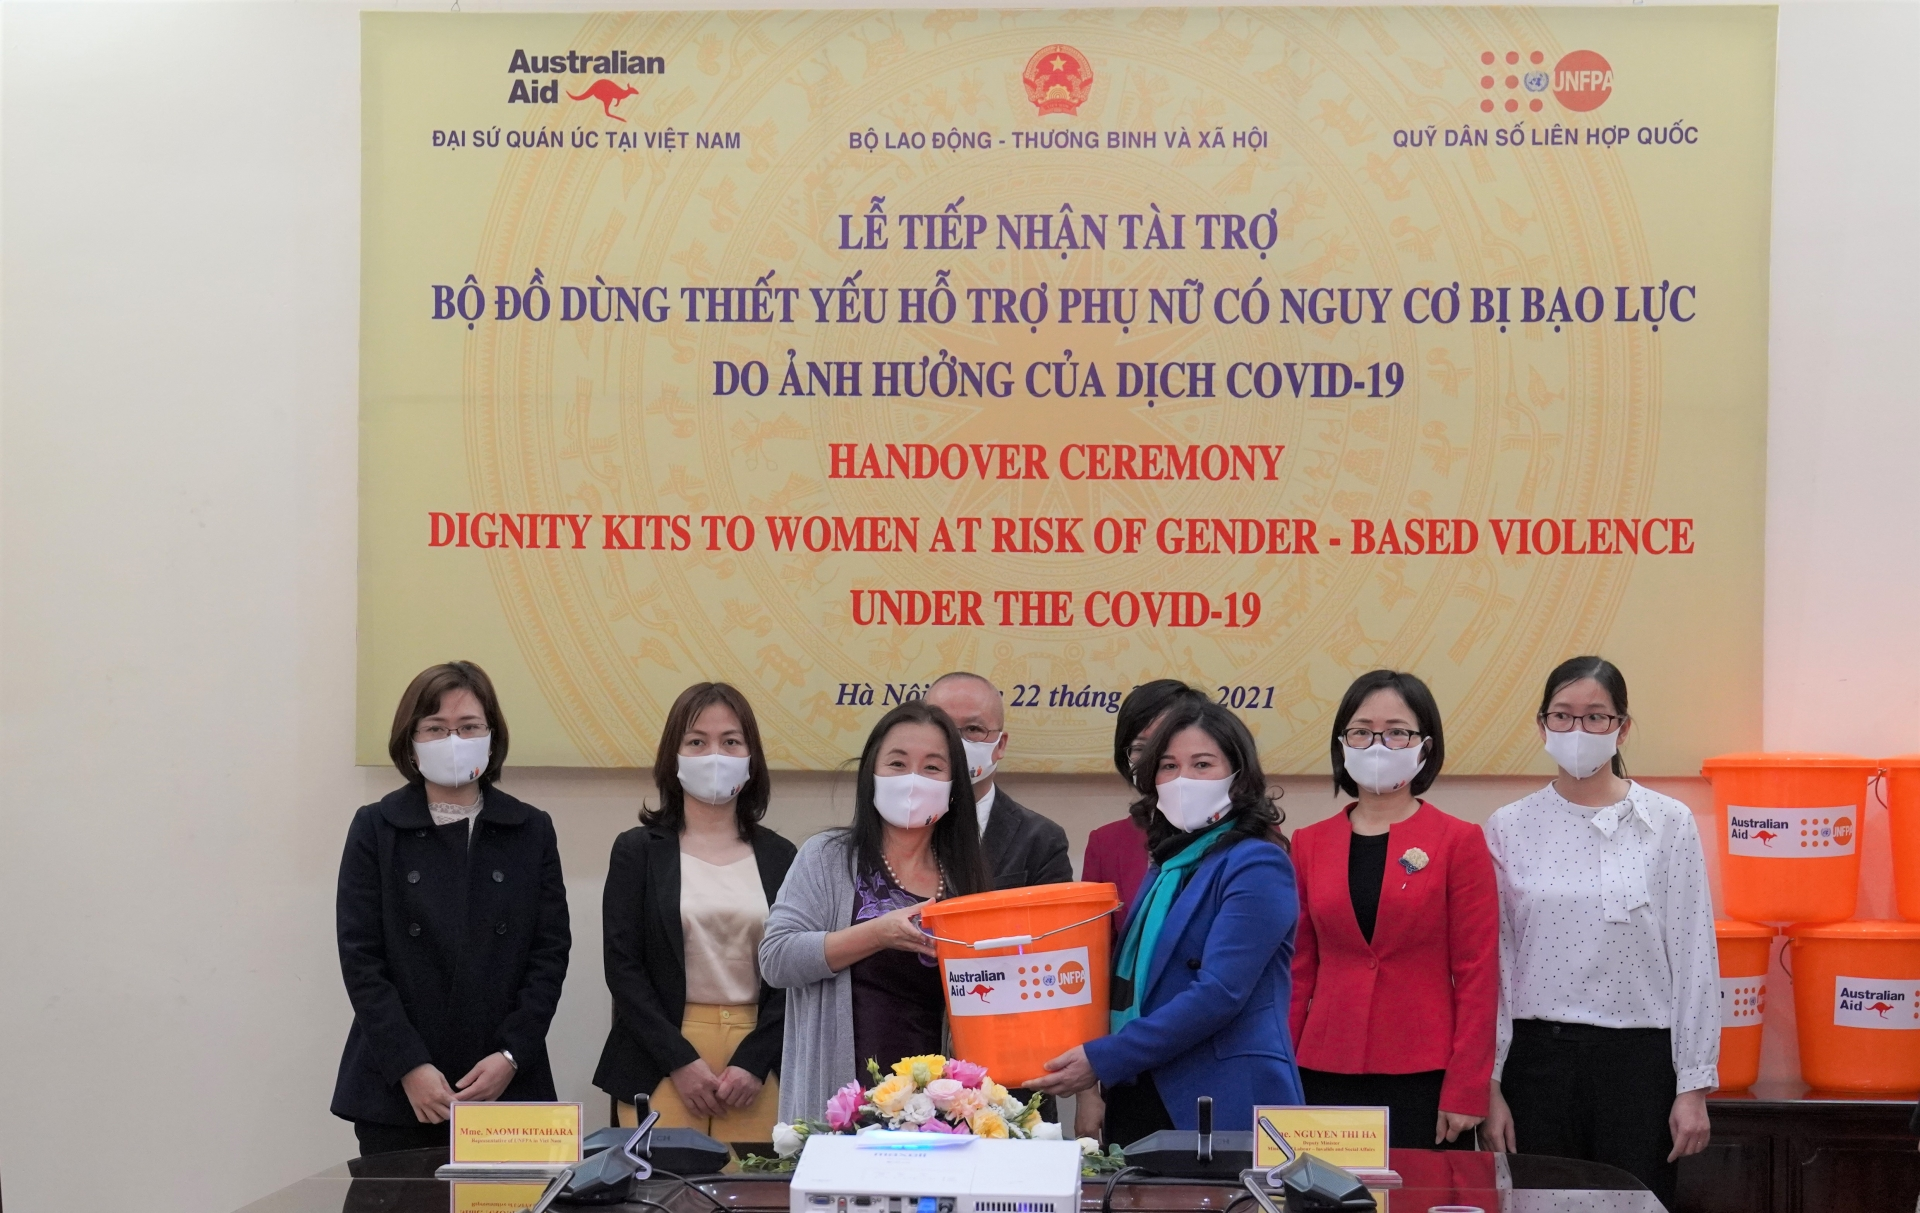 UNFPA provides 2,750 Dignity Kits to support women and girls at risk of violence